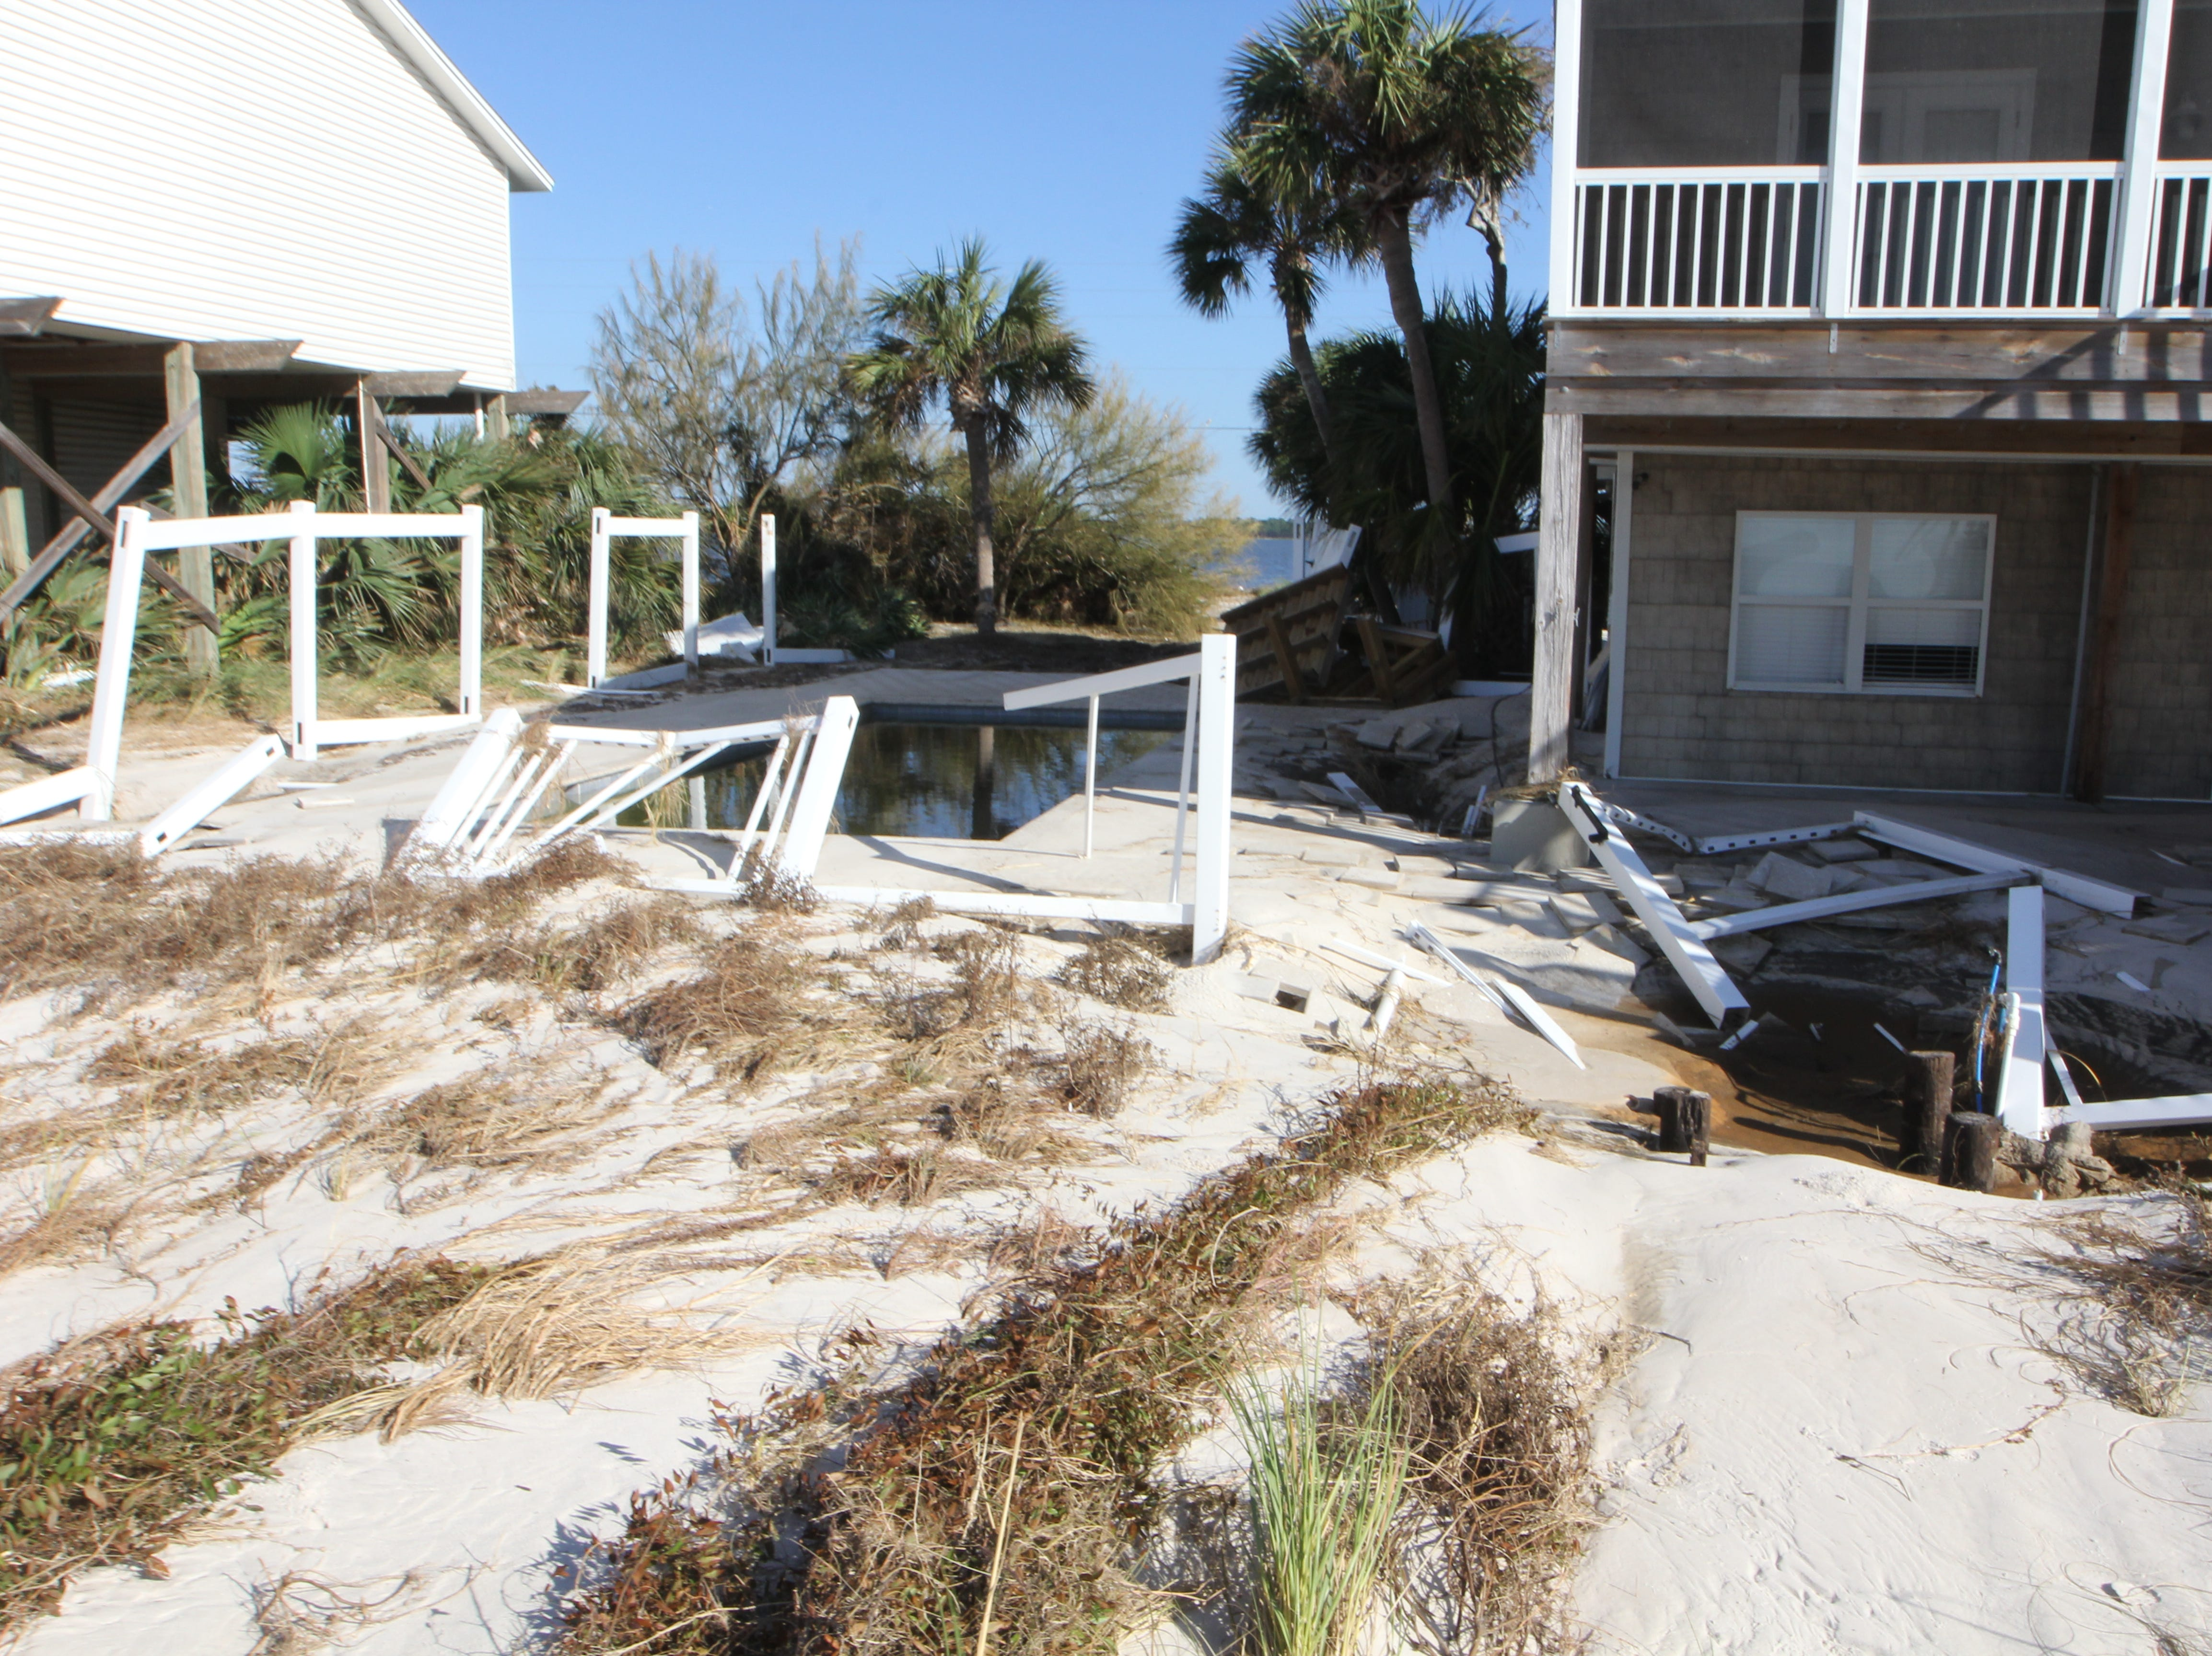 A swimming pool filled with seawater on Alligator Point after Hurricane Michael.